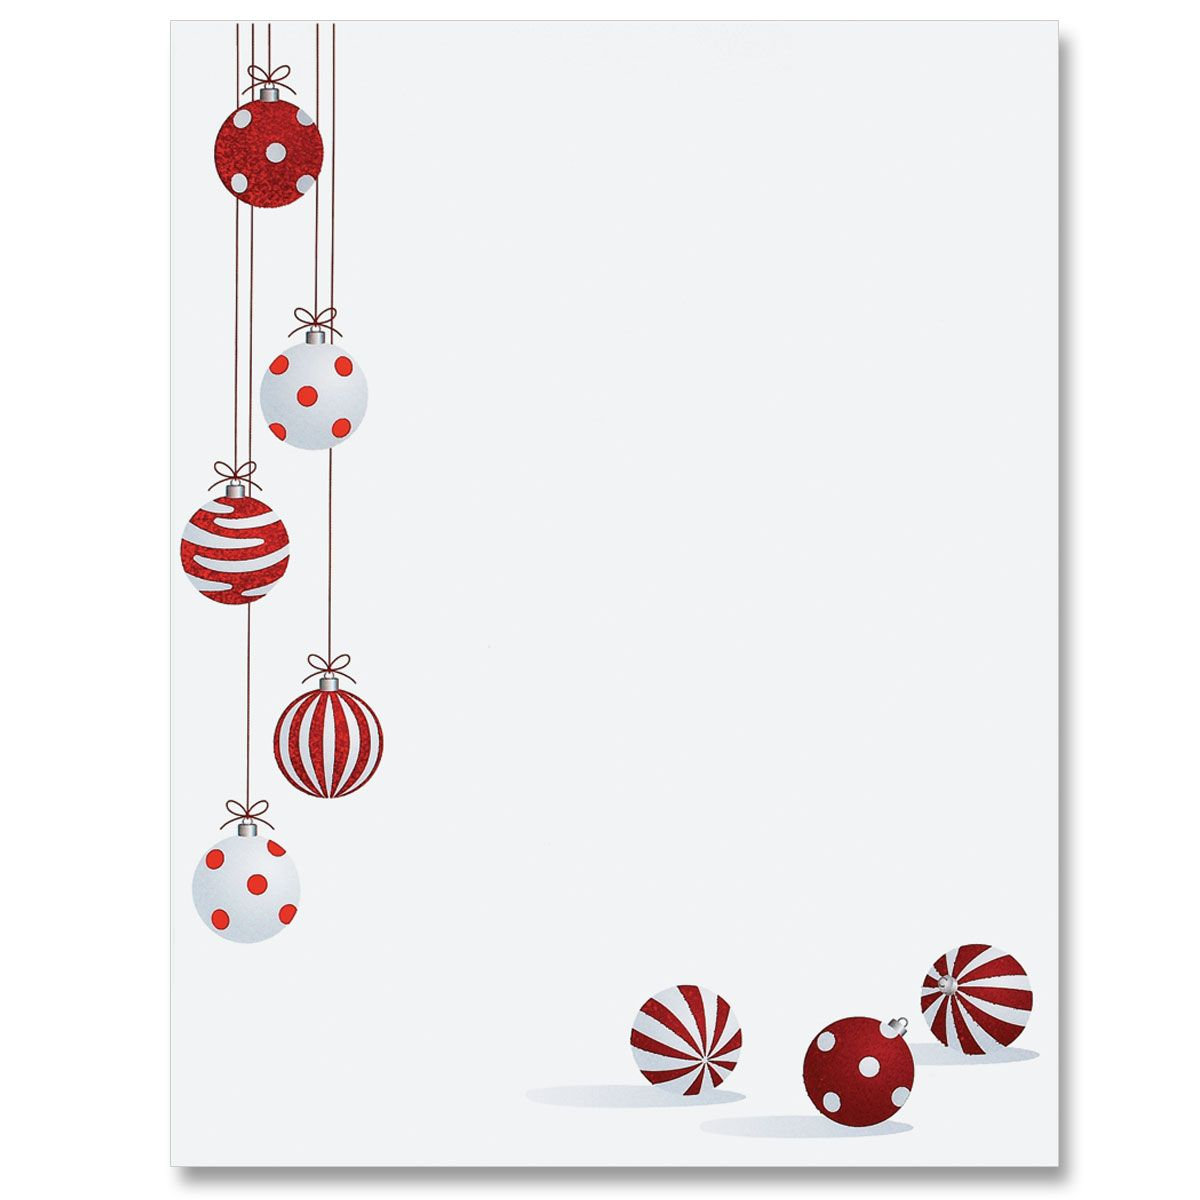 Crimson Delight Specialty Border Papers In 2021 Free Christmas Borders Free Christmas Printables Christmas Lettering